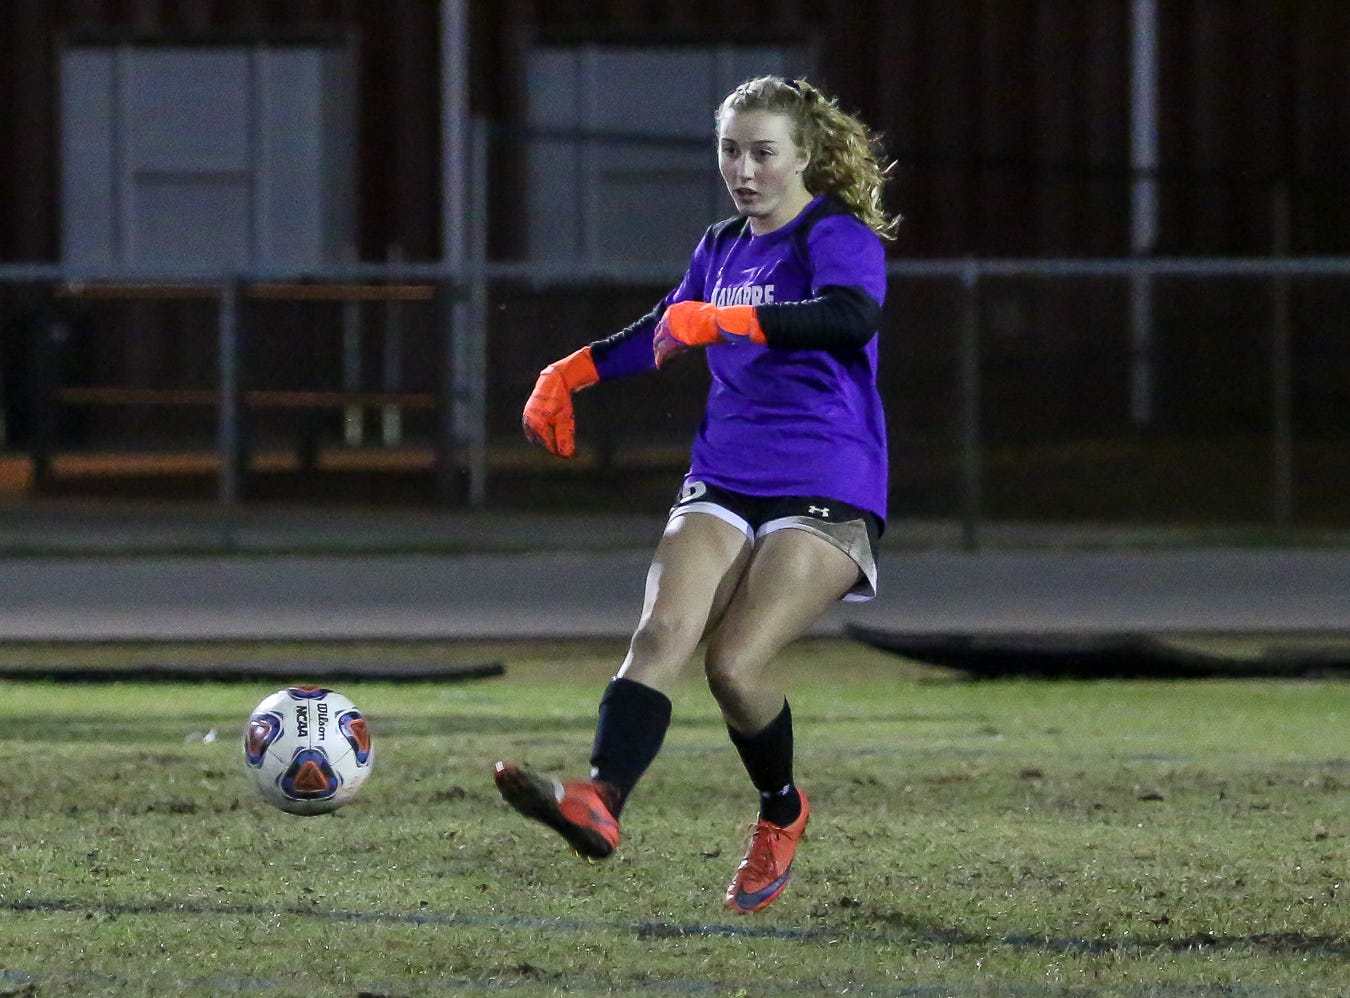 Navarre goaltender Jessika Seward (8) kicks the ball back into play against Niceville in a District 1-4A showdown of unbeaten teams at Navarre High School on Tuesday, December 4, 2018. The game ended in a 1-1 tie.